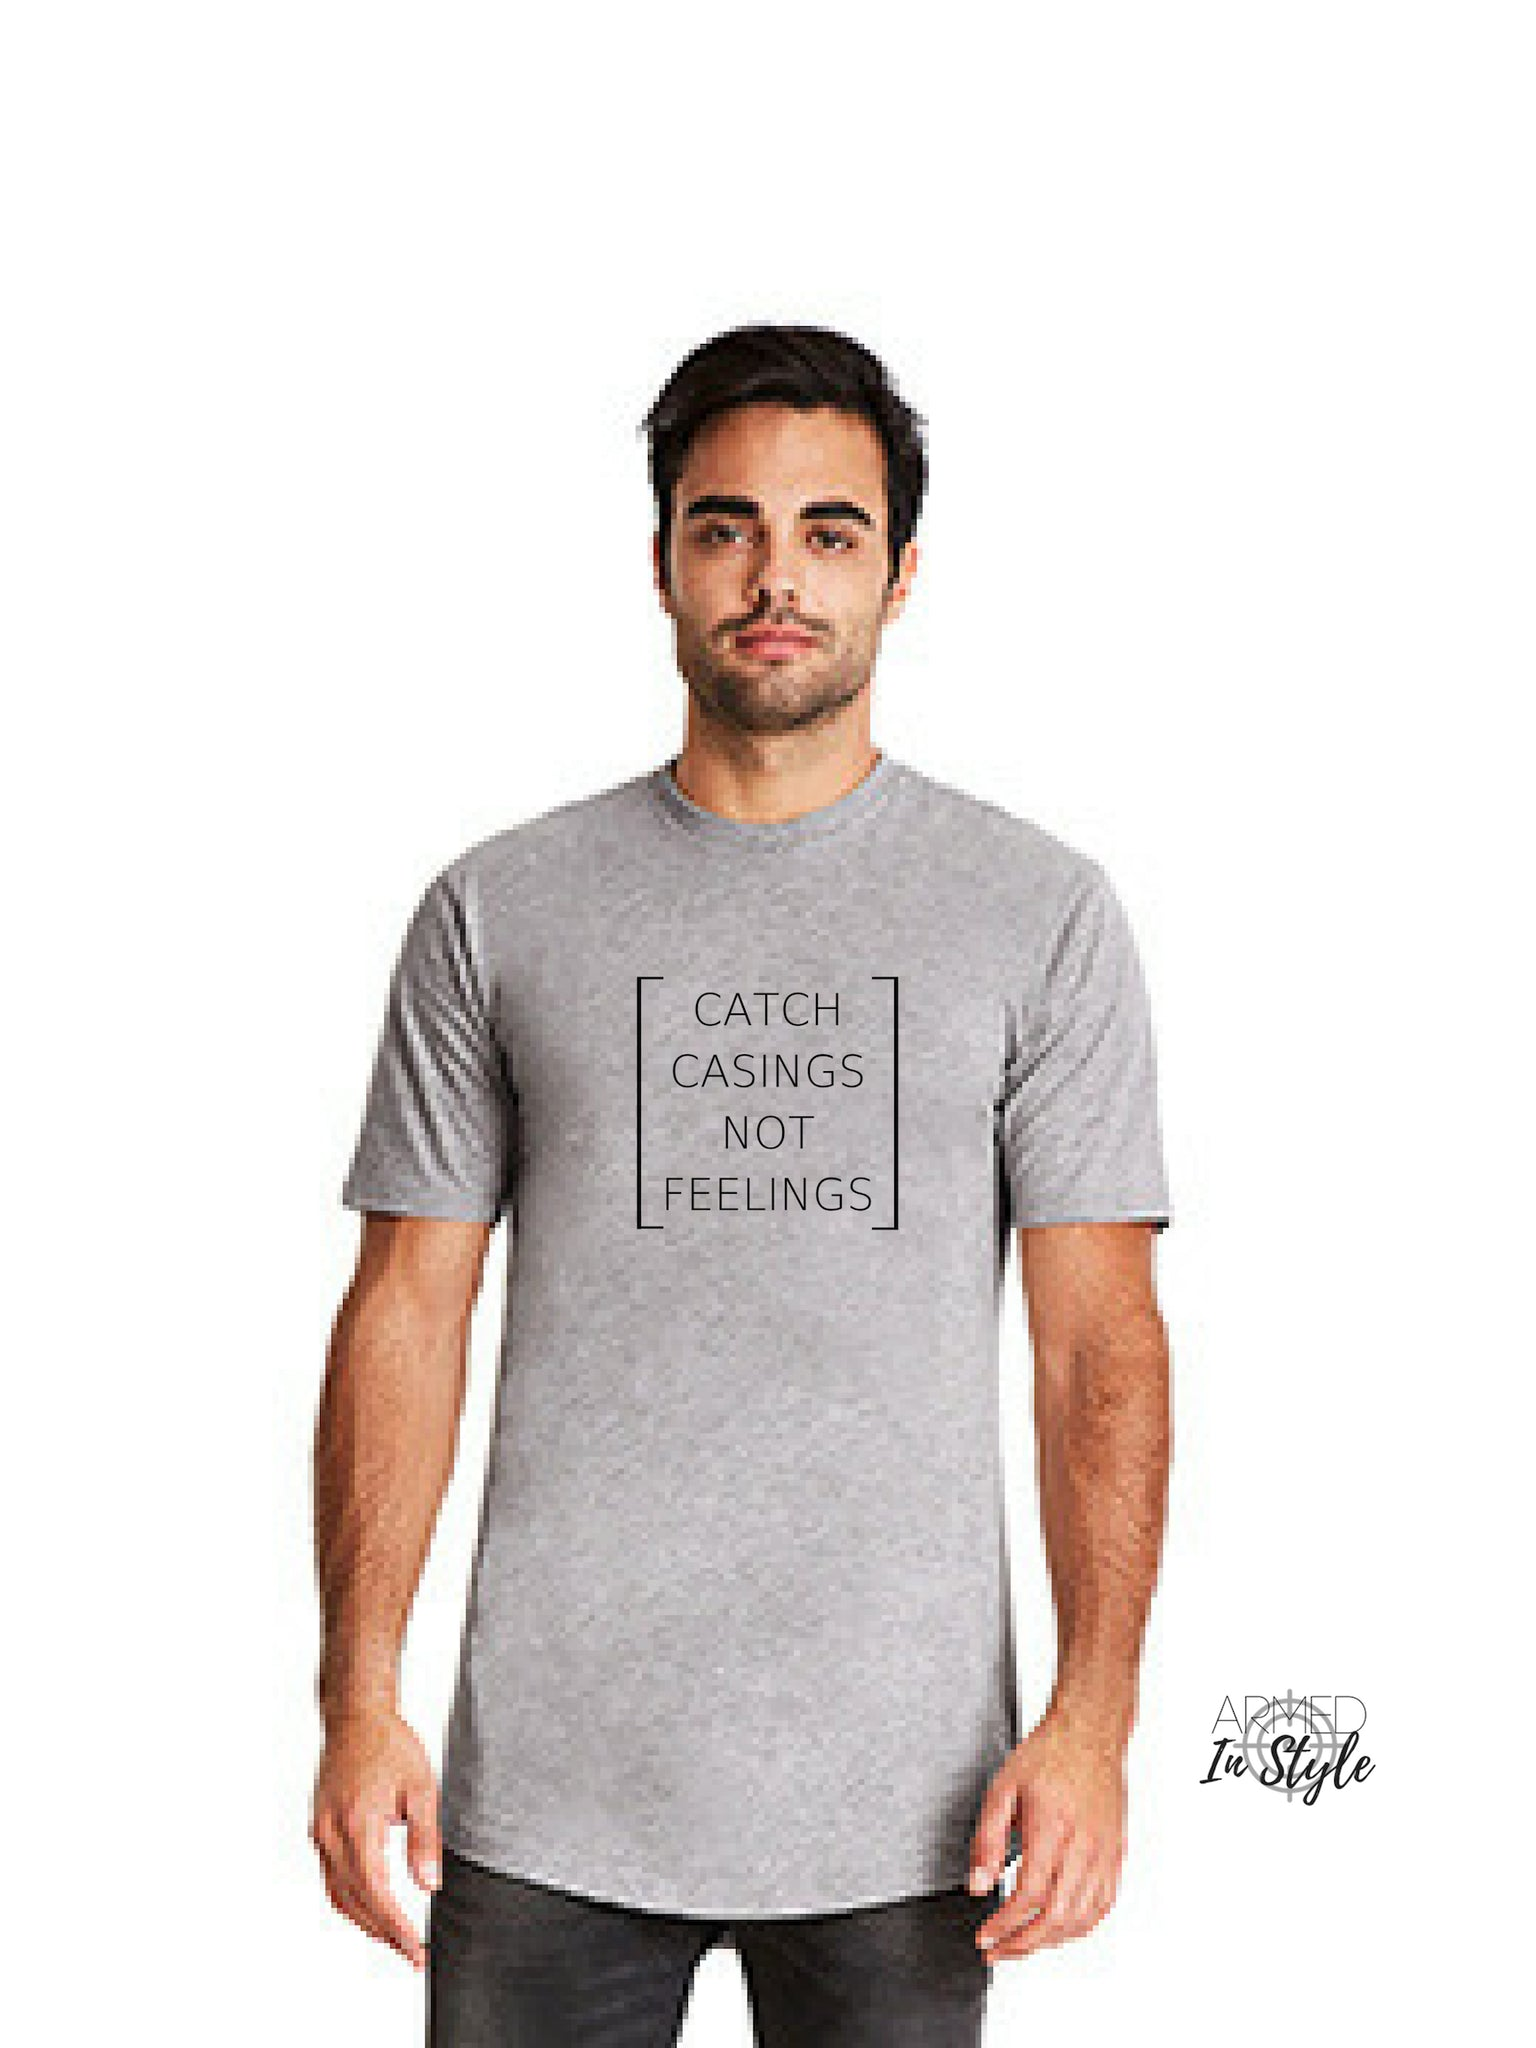 Catch Casings Not Feelings, Men's Urban T-Shirt